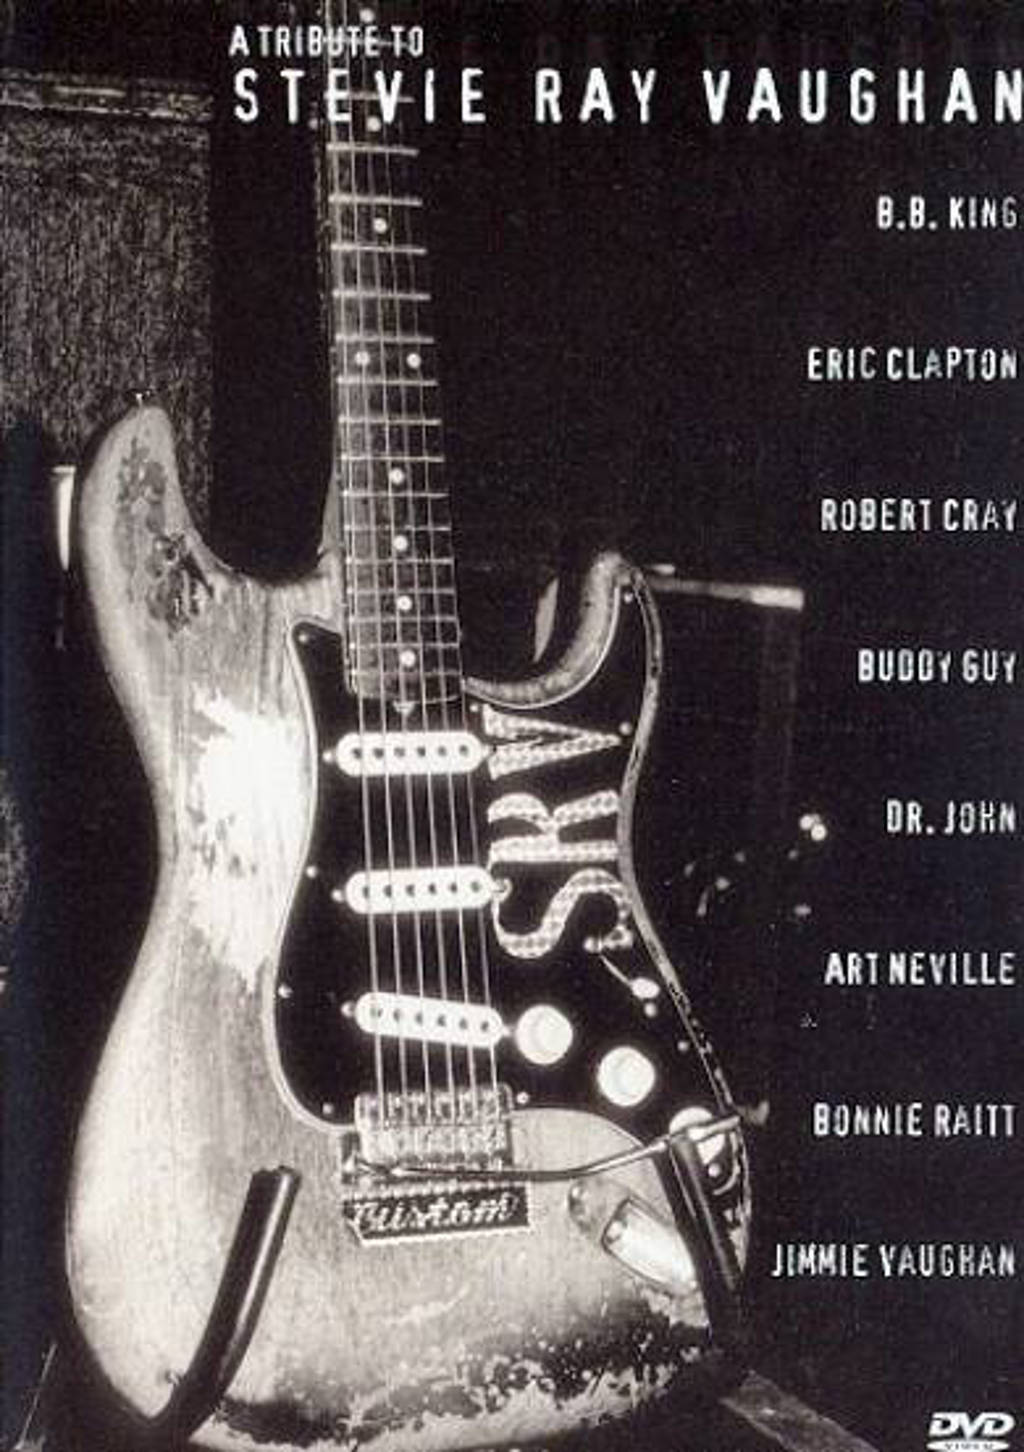 Stevie Ray Vaughan - tribute to (DVD)